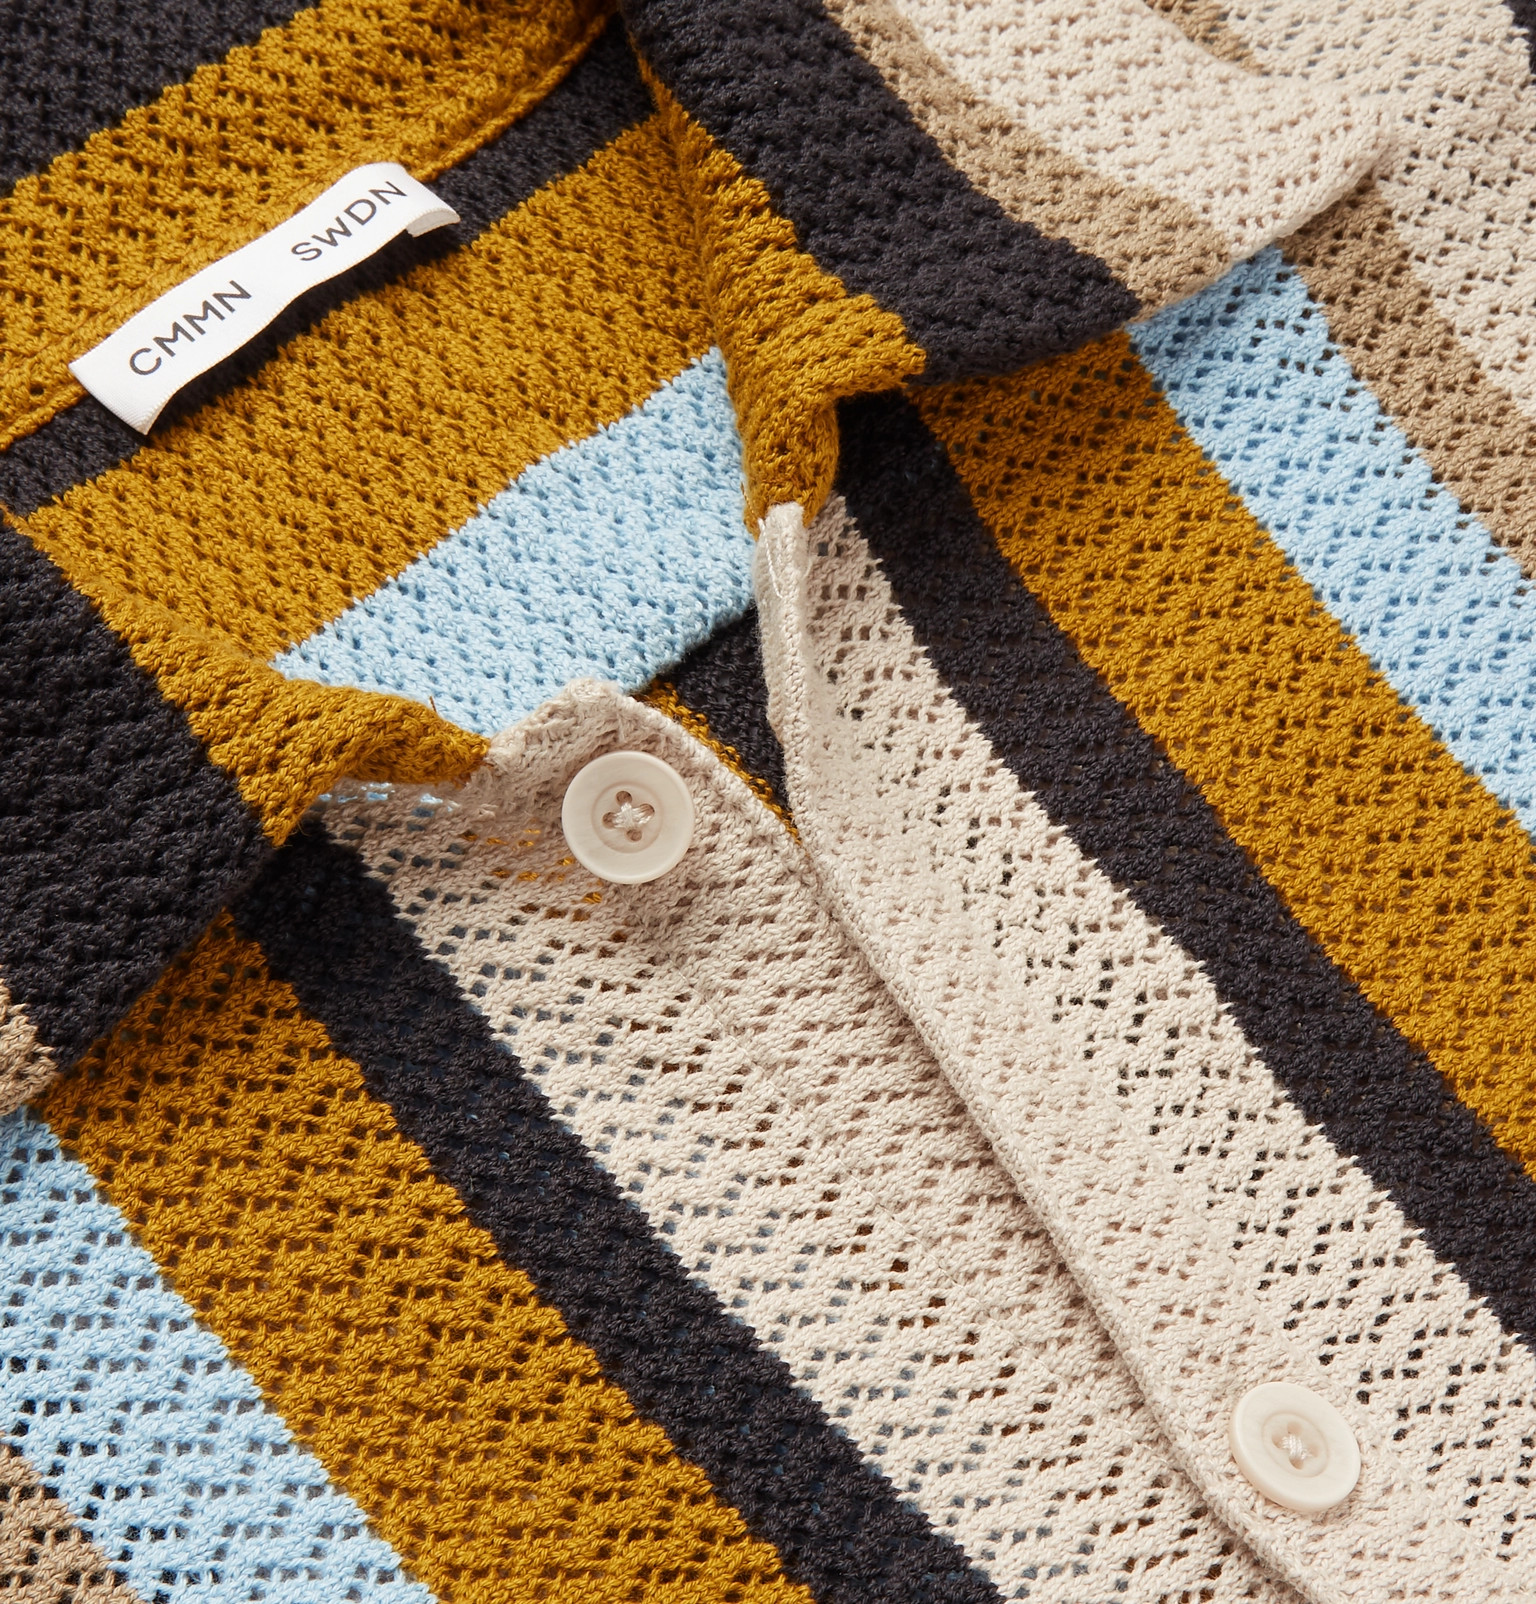 6efe4a51e1 CMMN SWDN - Wes Striped Knitted Cotton Shirt